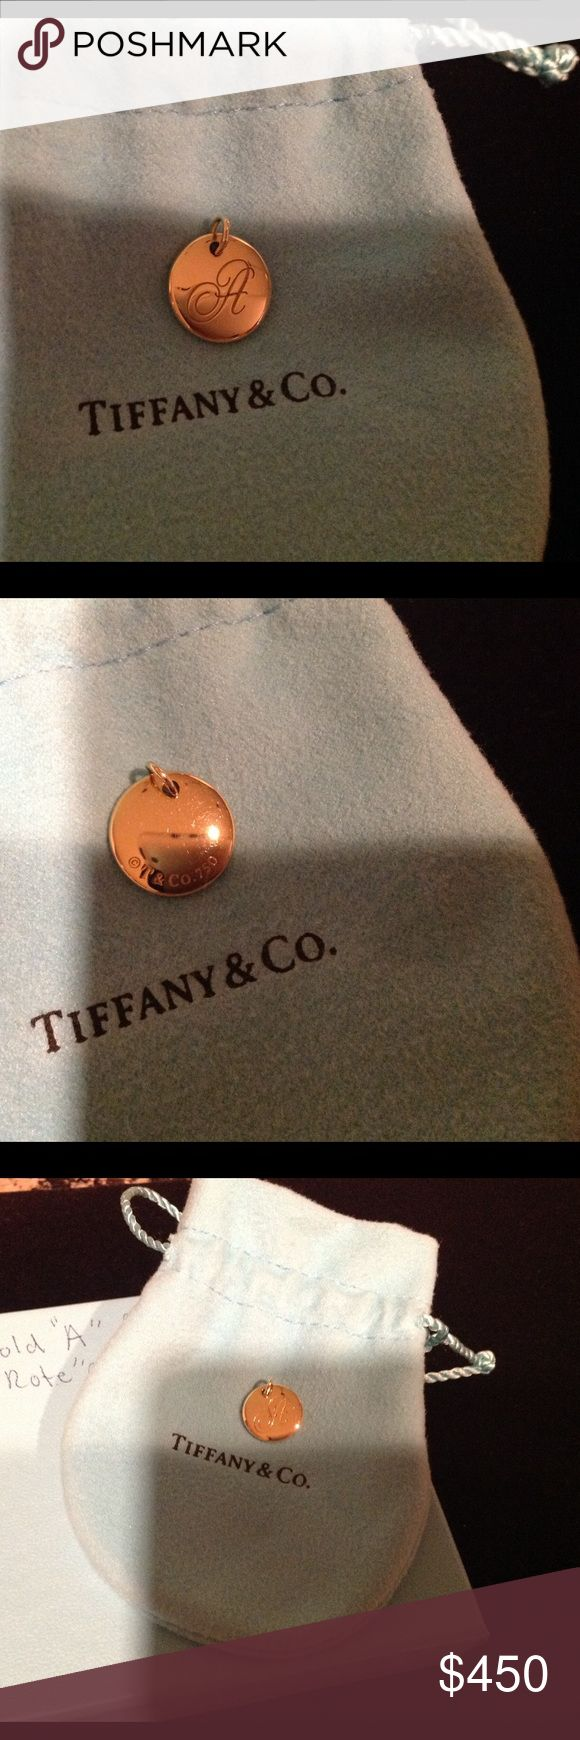 Tiffany & Co A Note Charm 18kt  SPECIAL SALE 💕💕 Small Tiffany and Company 18kt Yellow Gold  note charm . Comes with pouch and box. I had written note charm on box. Being sold online now at Tiffany and Co!!!!!! Tiffany & Co. Jewelry